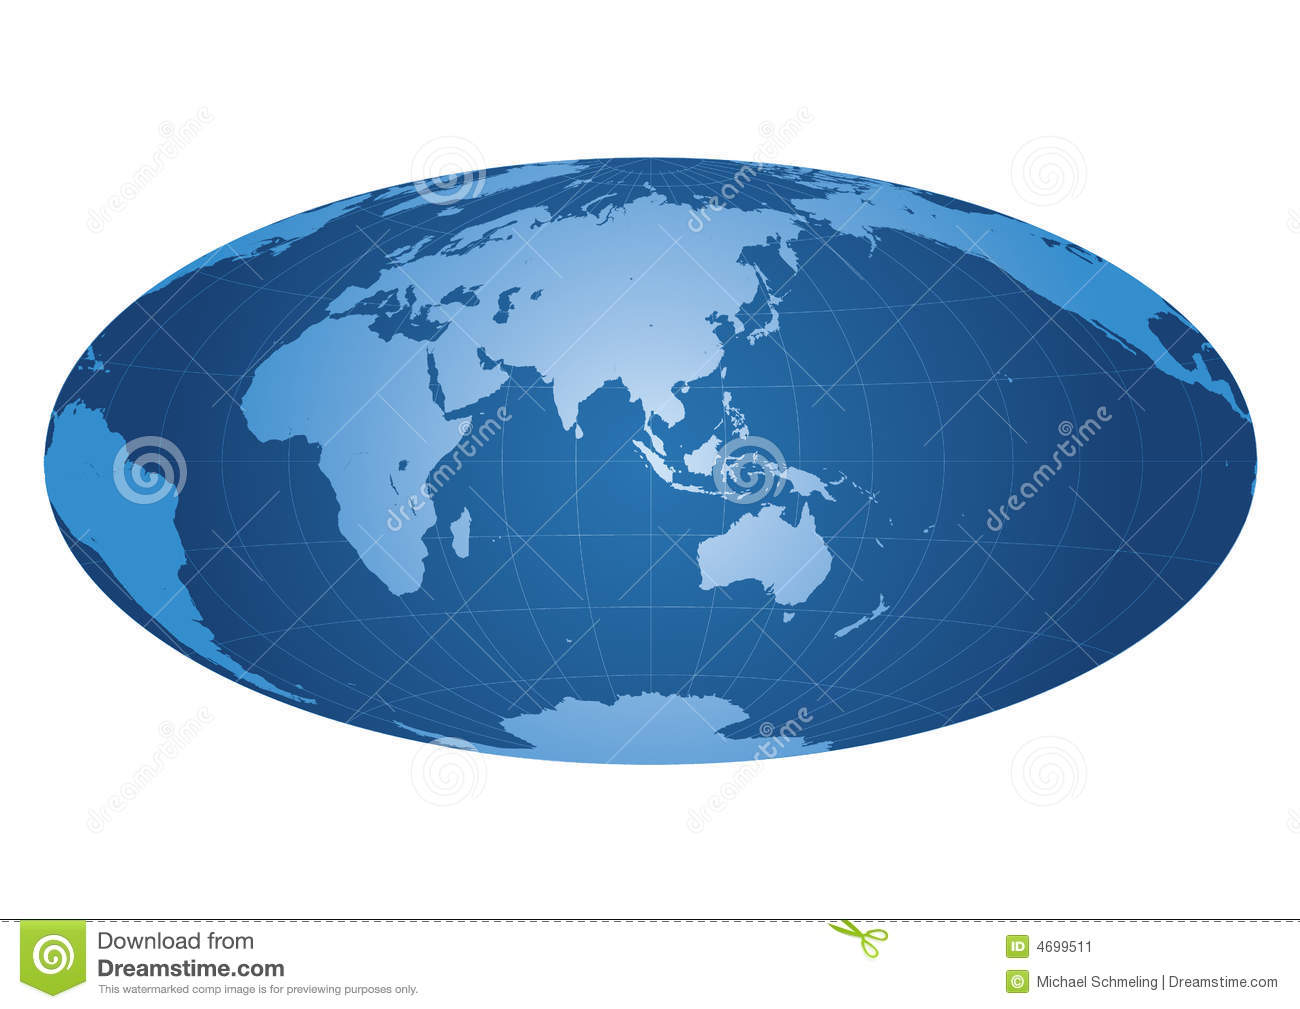 Travel map generator picture ideas references travel map generator world map image pacific centered travel map generator gumiabroncs Gallery